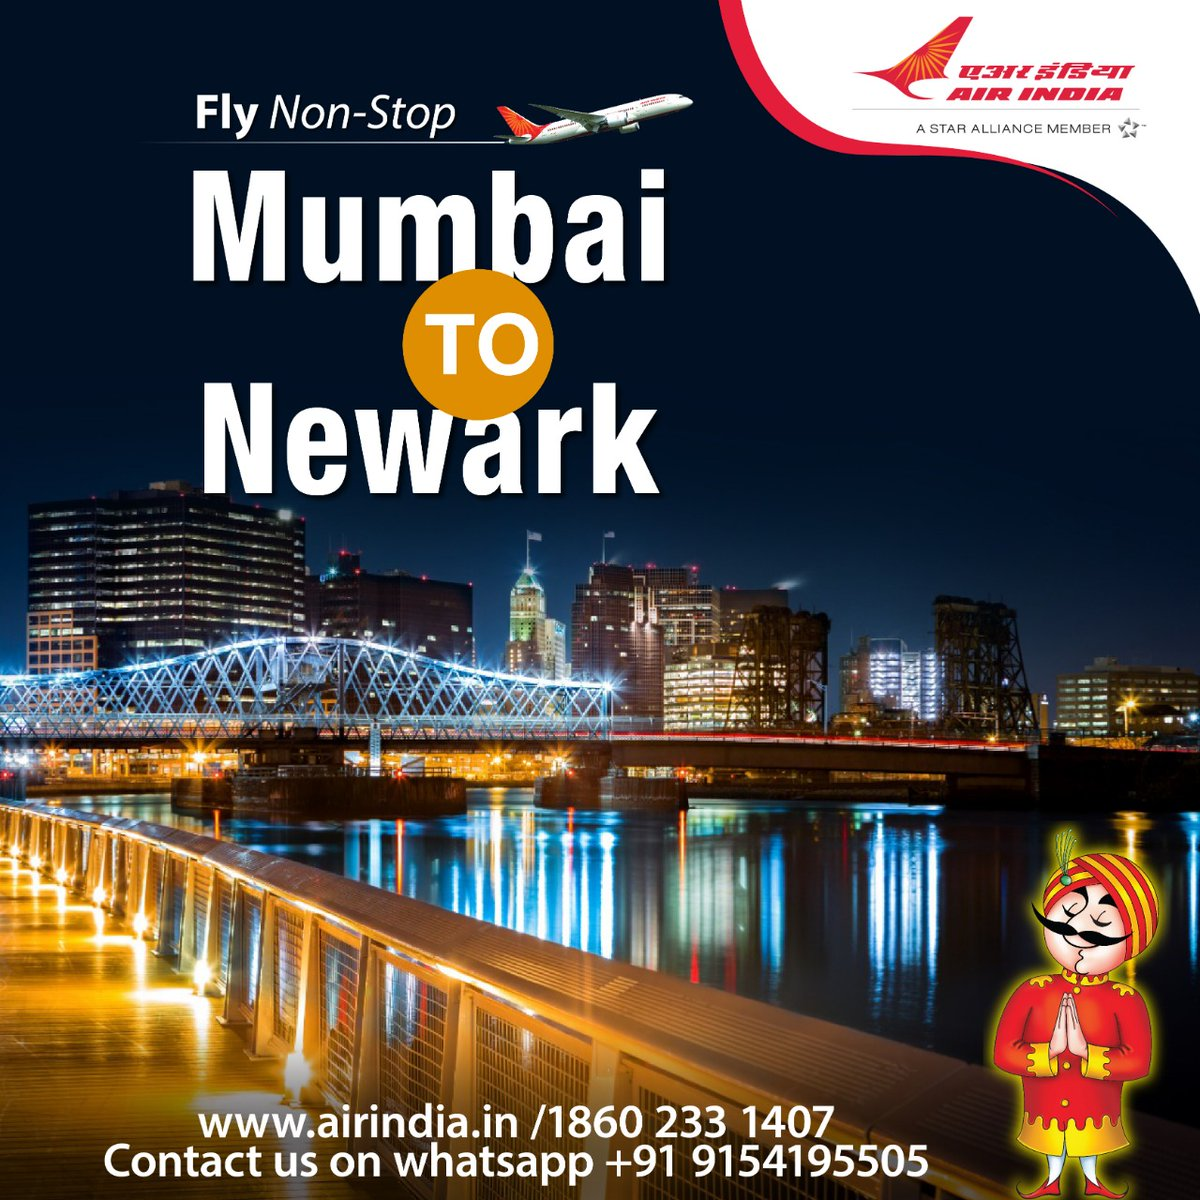 #FlyAI : Fly non-stop between Mumbai and Newark.  Booking open through Air India website, Booking Offices, Call Centre and Authorised Travel Agents.  For detailed schedule please visit the link